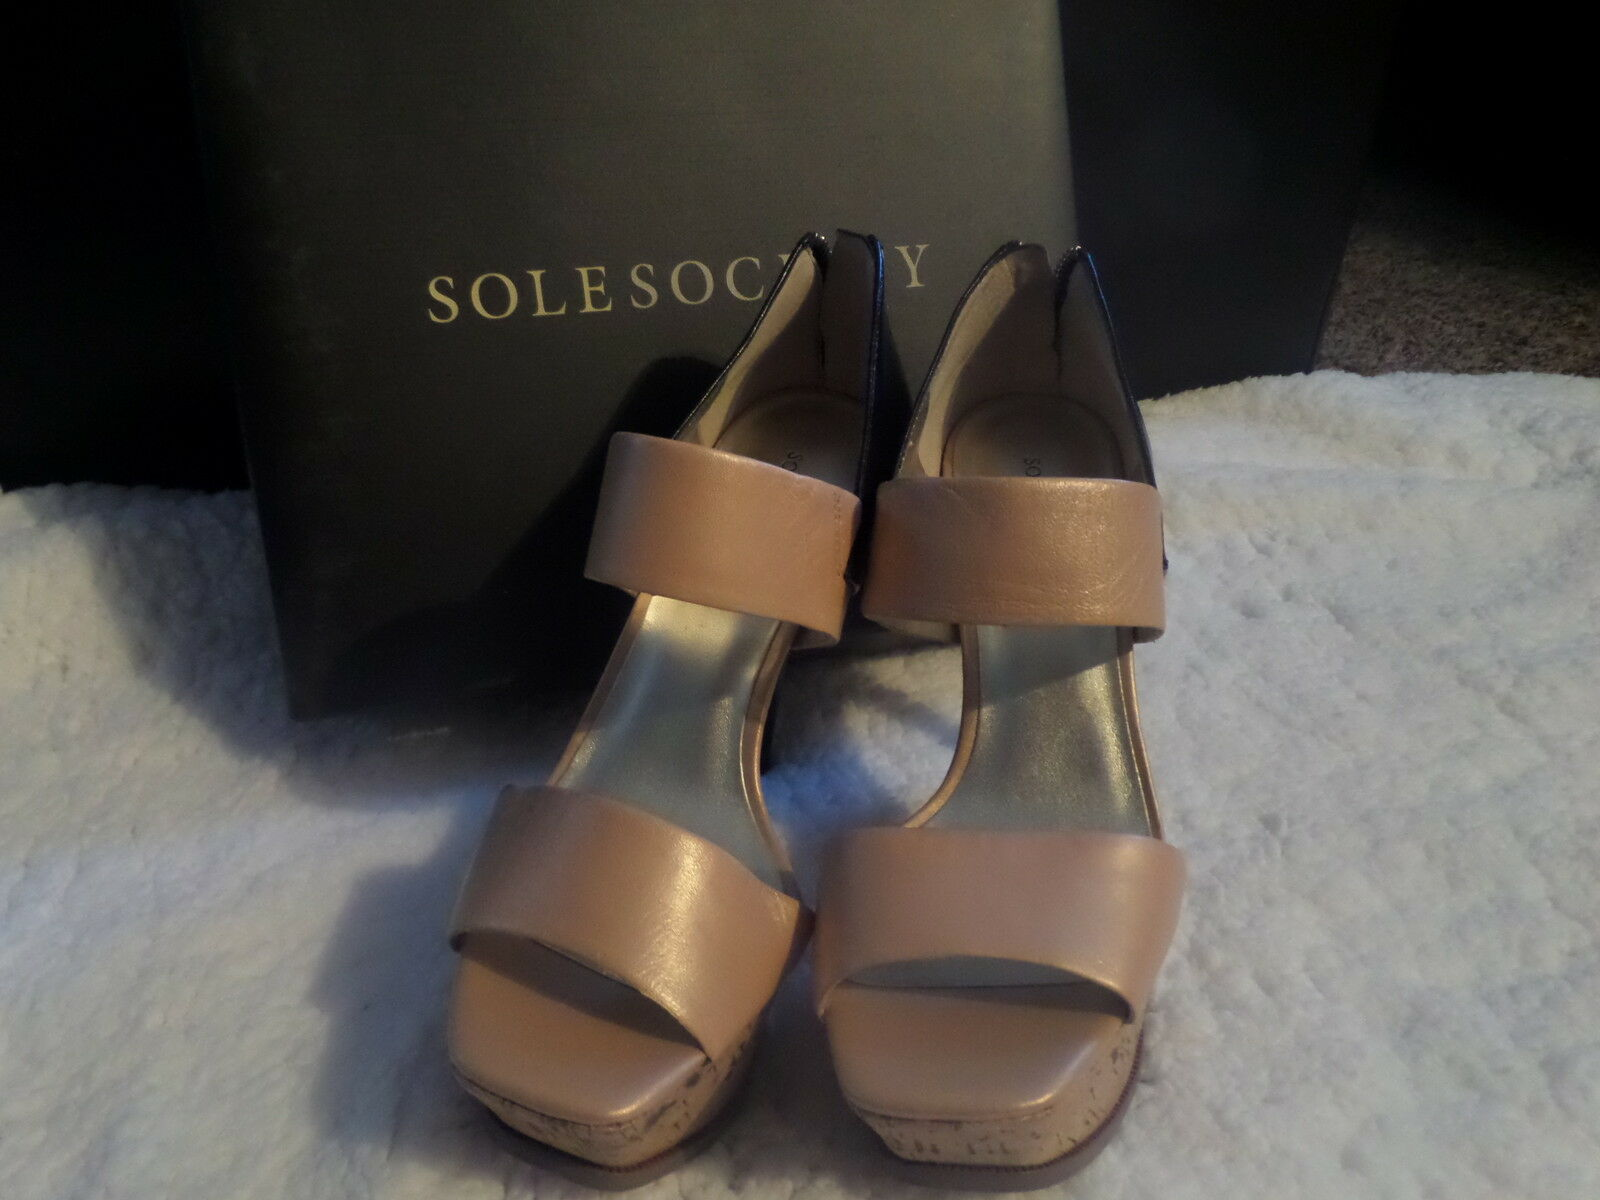 NWOB Sole Society SO-MAKAYLA Pearlized Sand   Black Sandals SZ 9